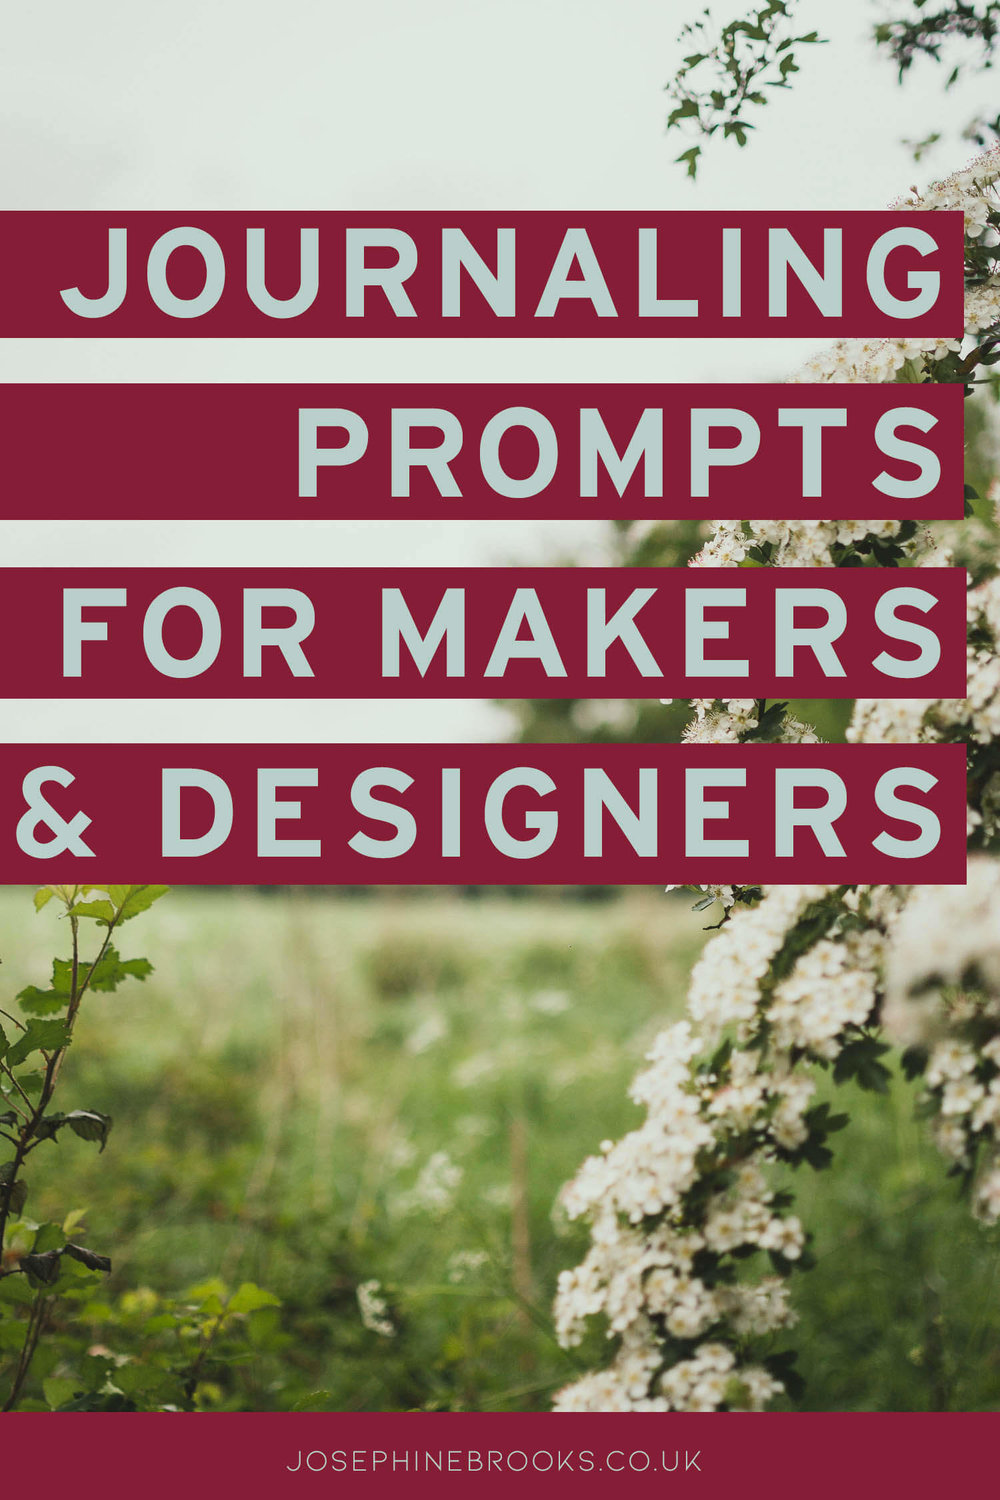 10 Journaling prompts for creatives, Journal prompts for makers and designers, Journaling questions, How to start journaling, Creative business journal tips, No-pressure journaling, How to start a creative journal